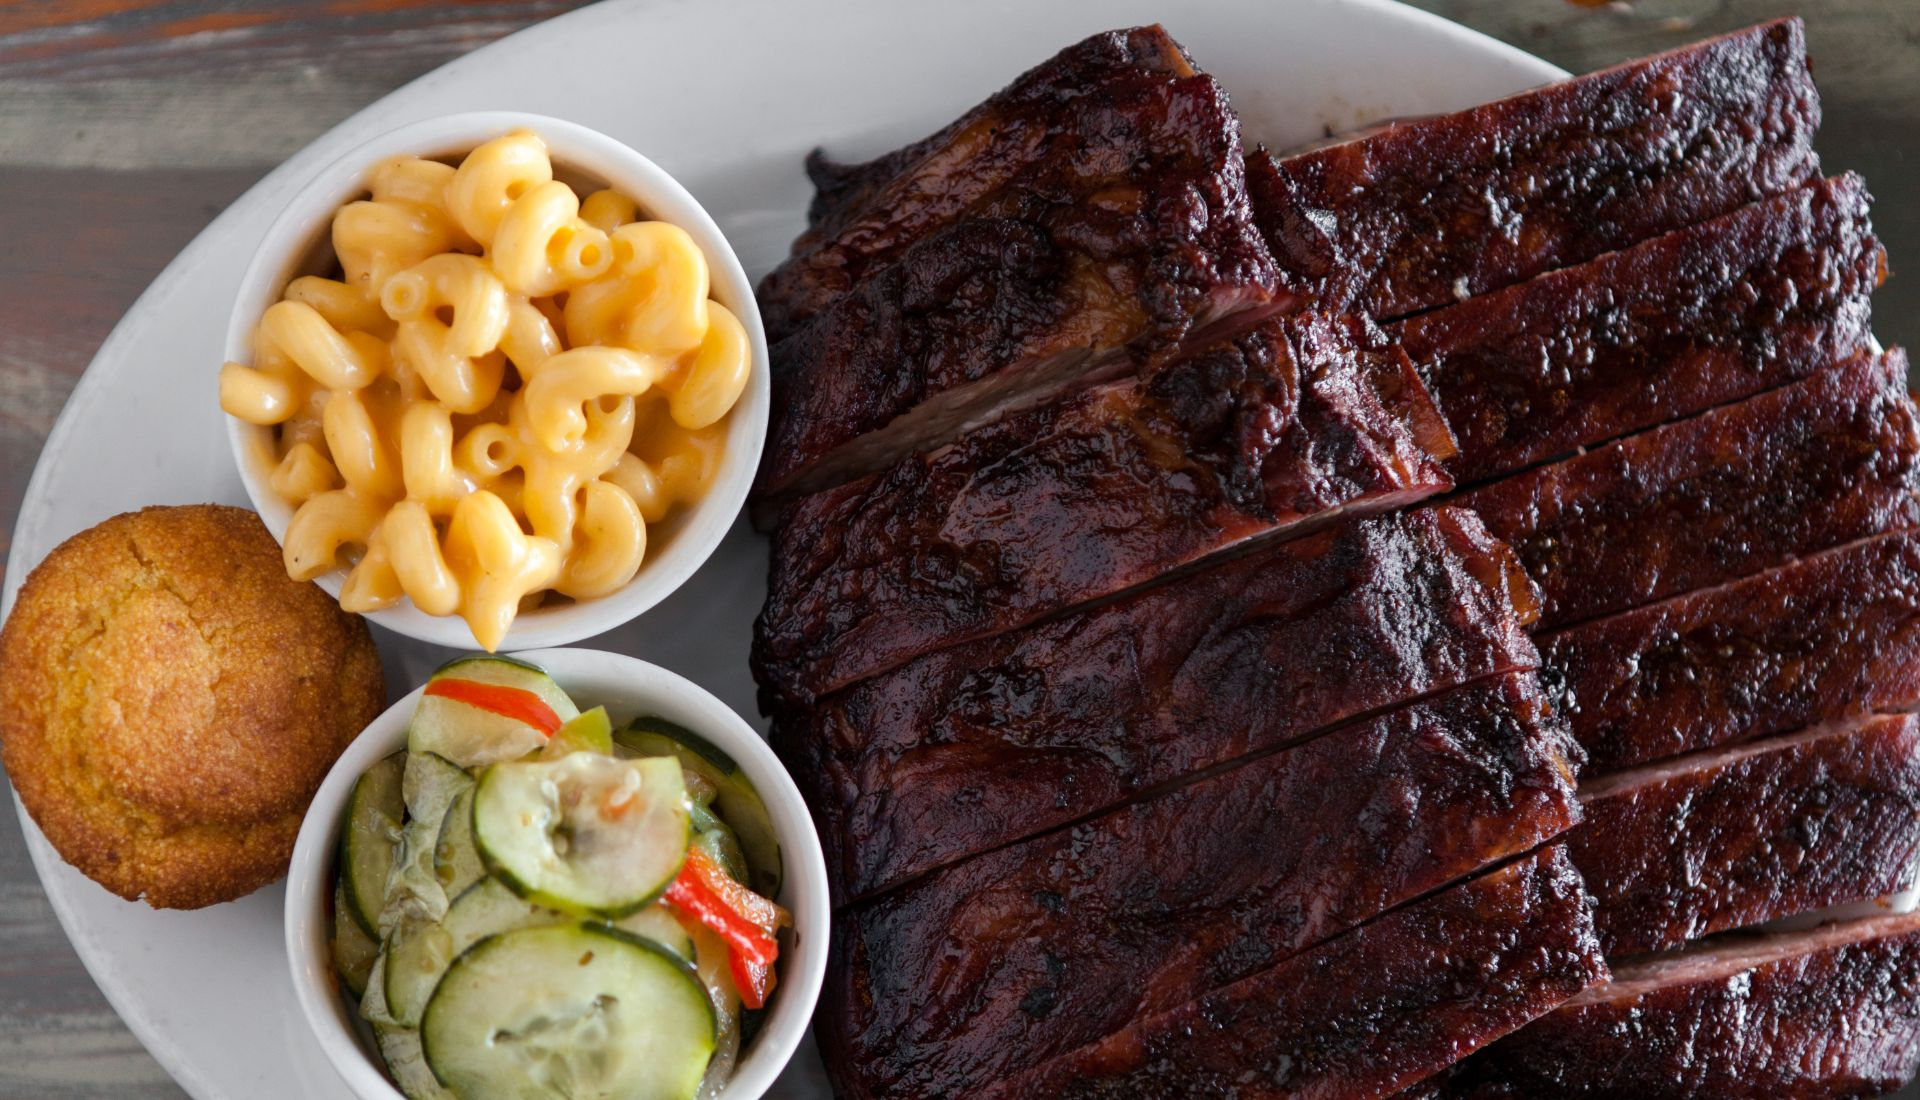 BBQ ribs on a plate with pickled vegetables and mac and cheese